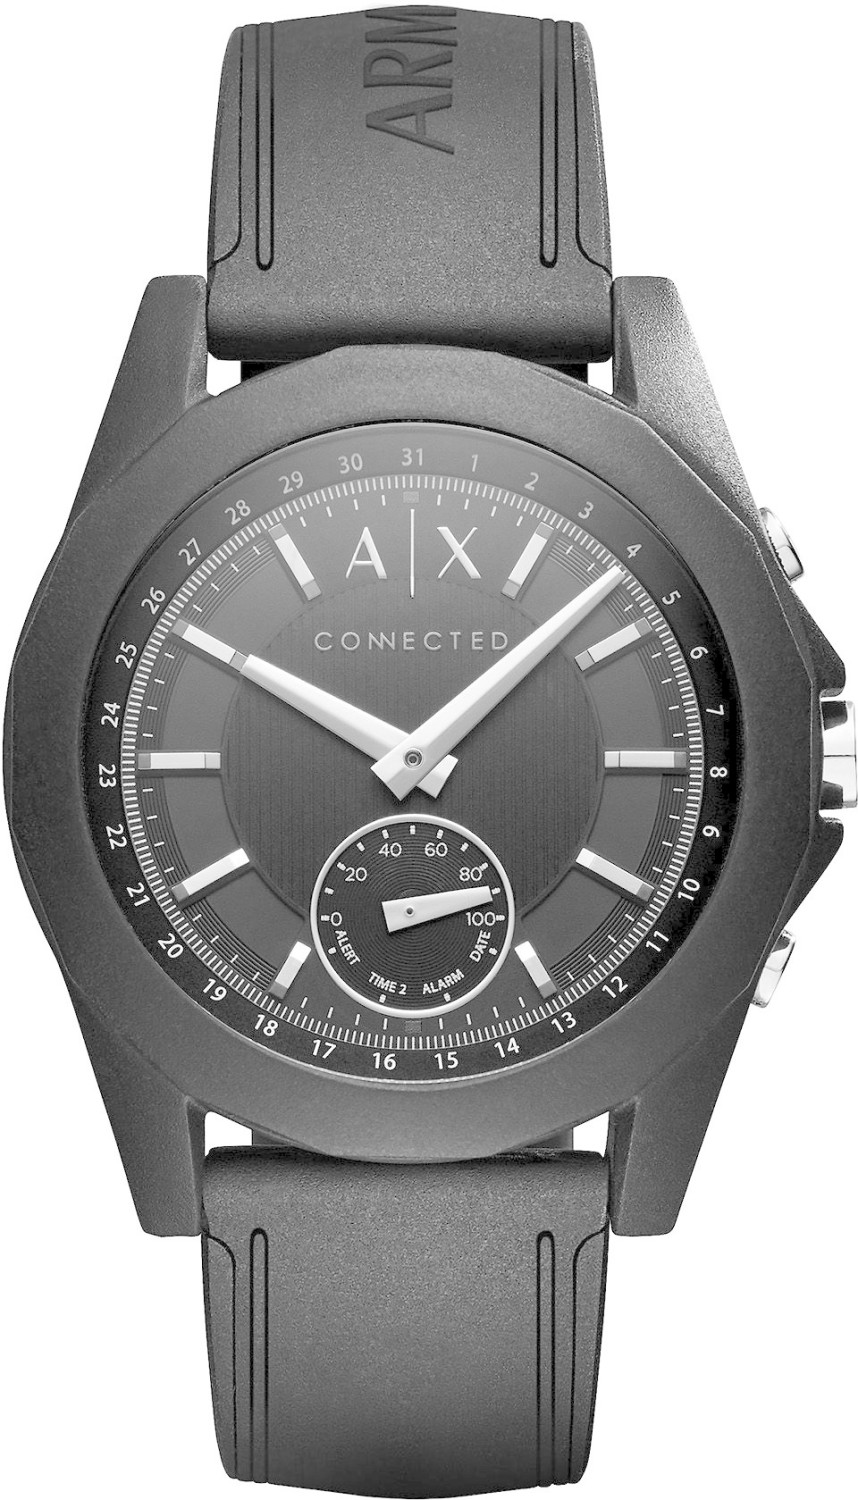 Armani Exchange Connected schwarz silber